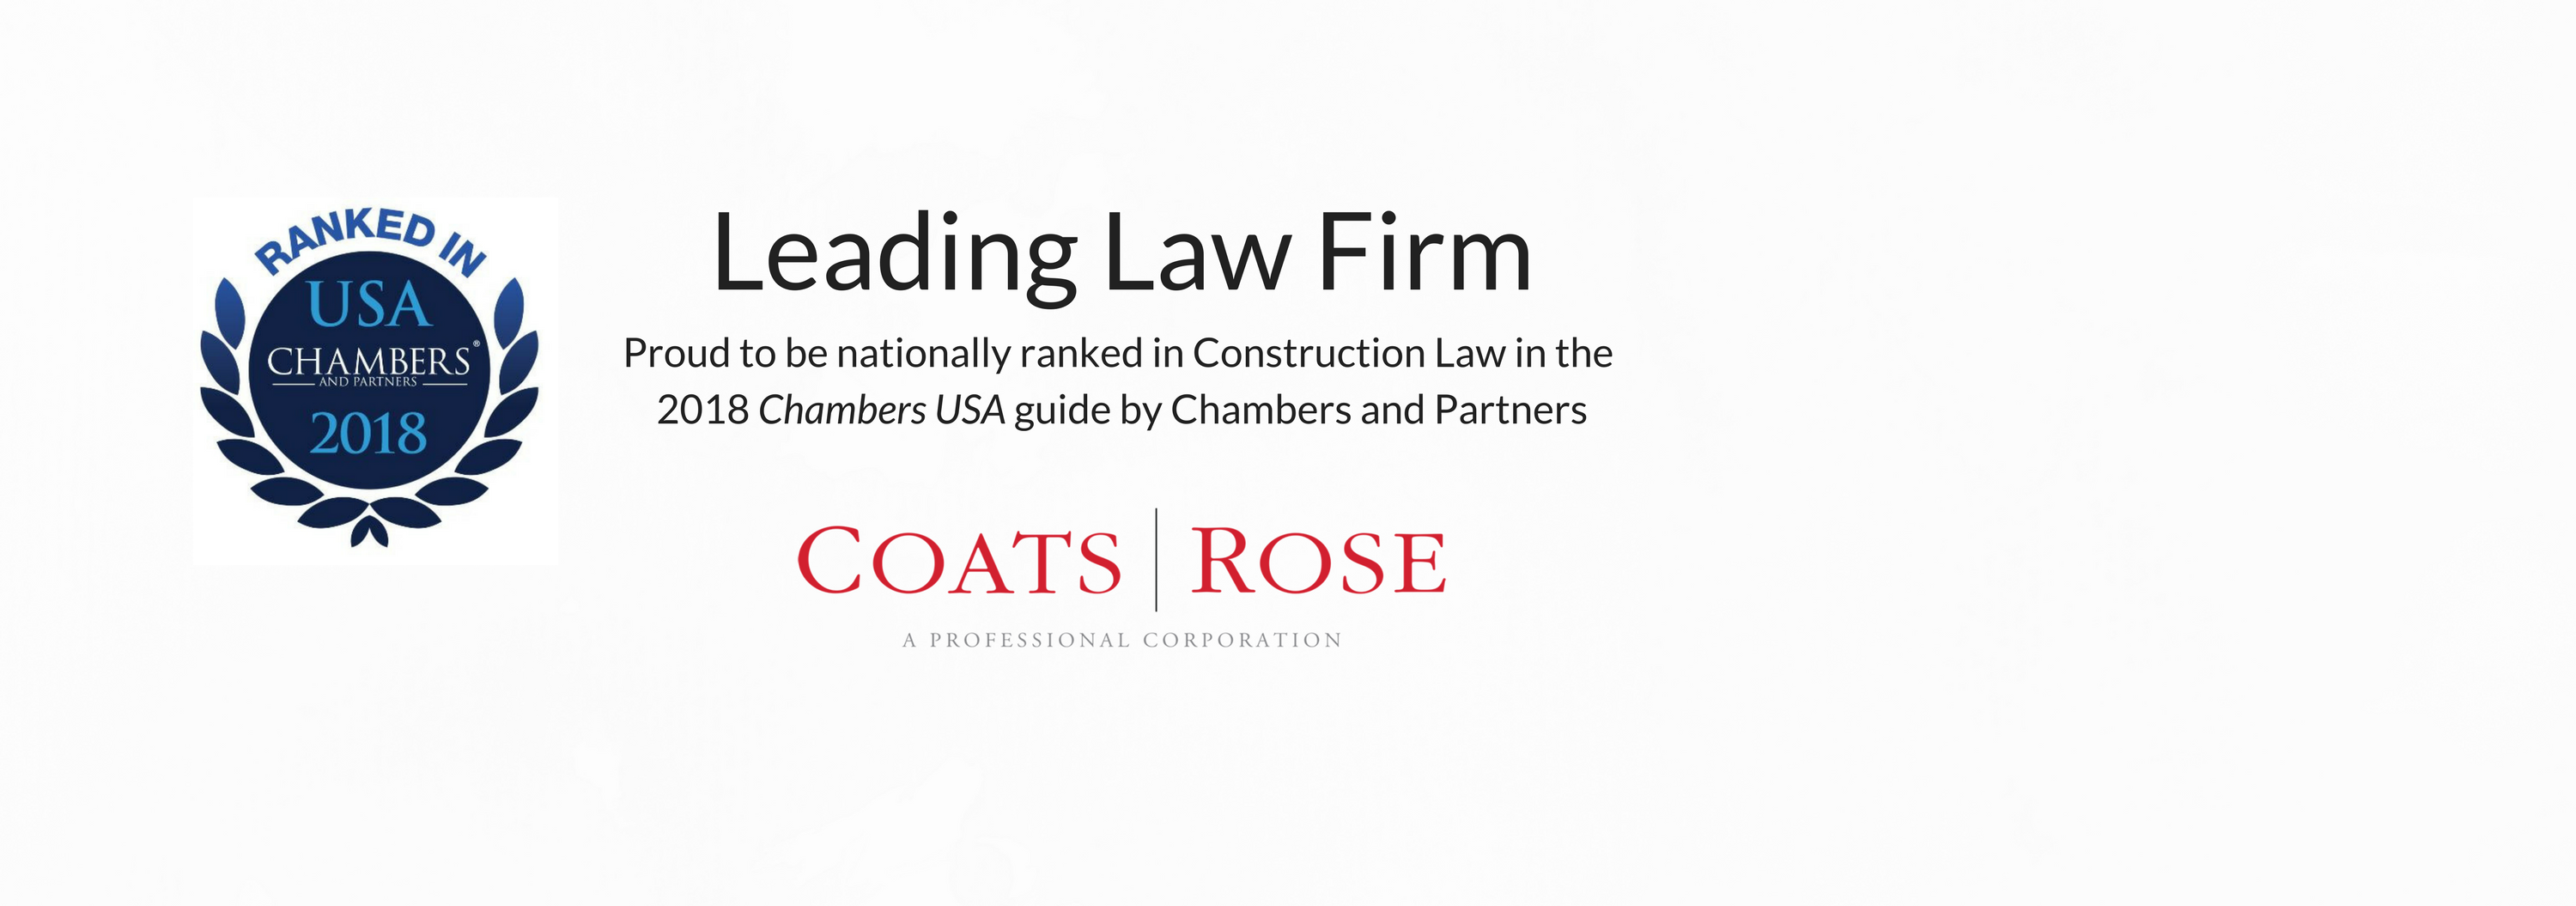 Coats Rose Texas Construction Practice Ranked in the 2018 Chambers USA  Legal Guide by Chambers & Partners